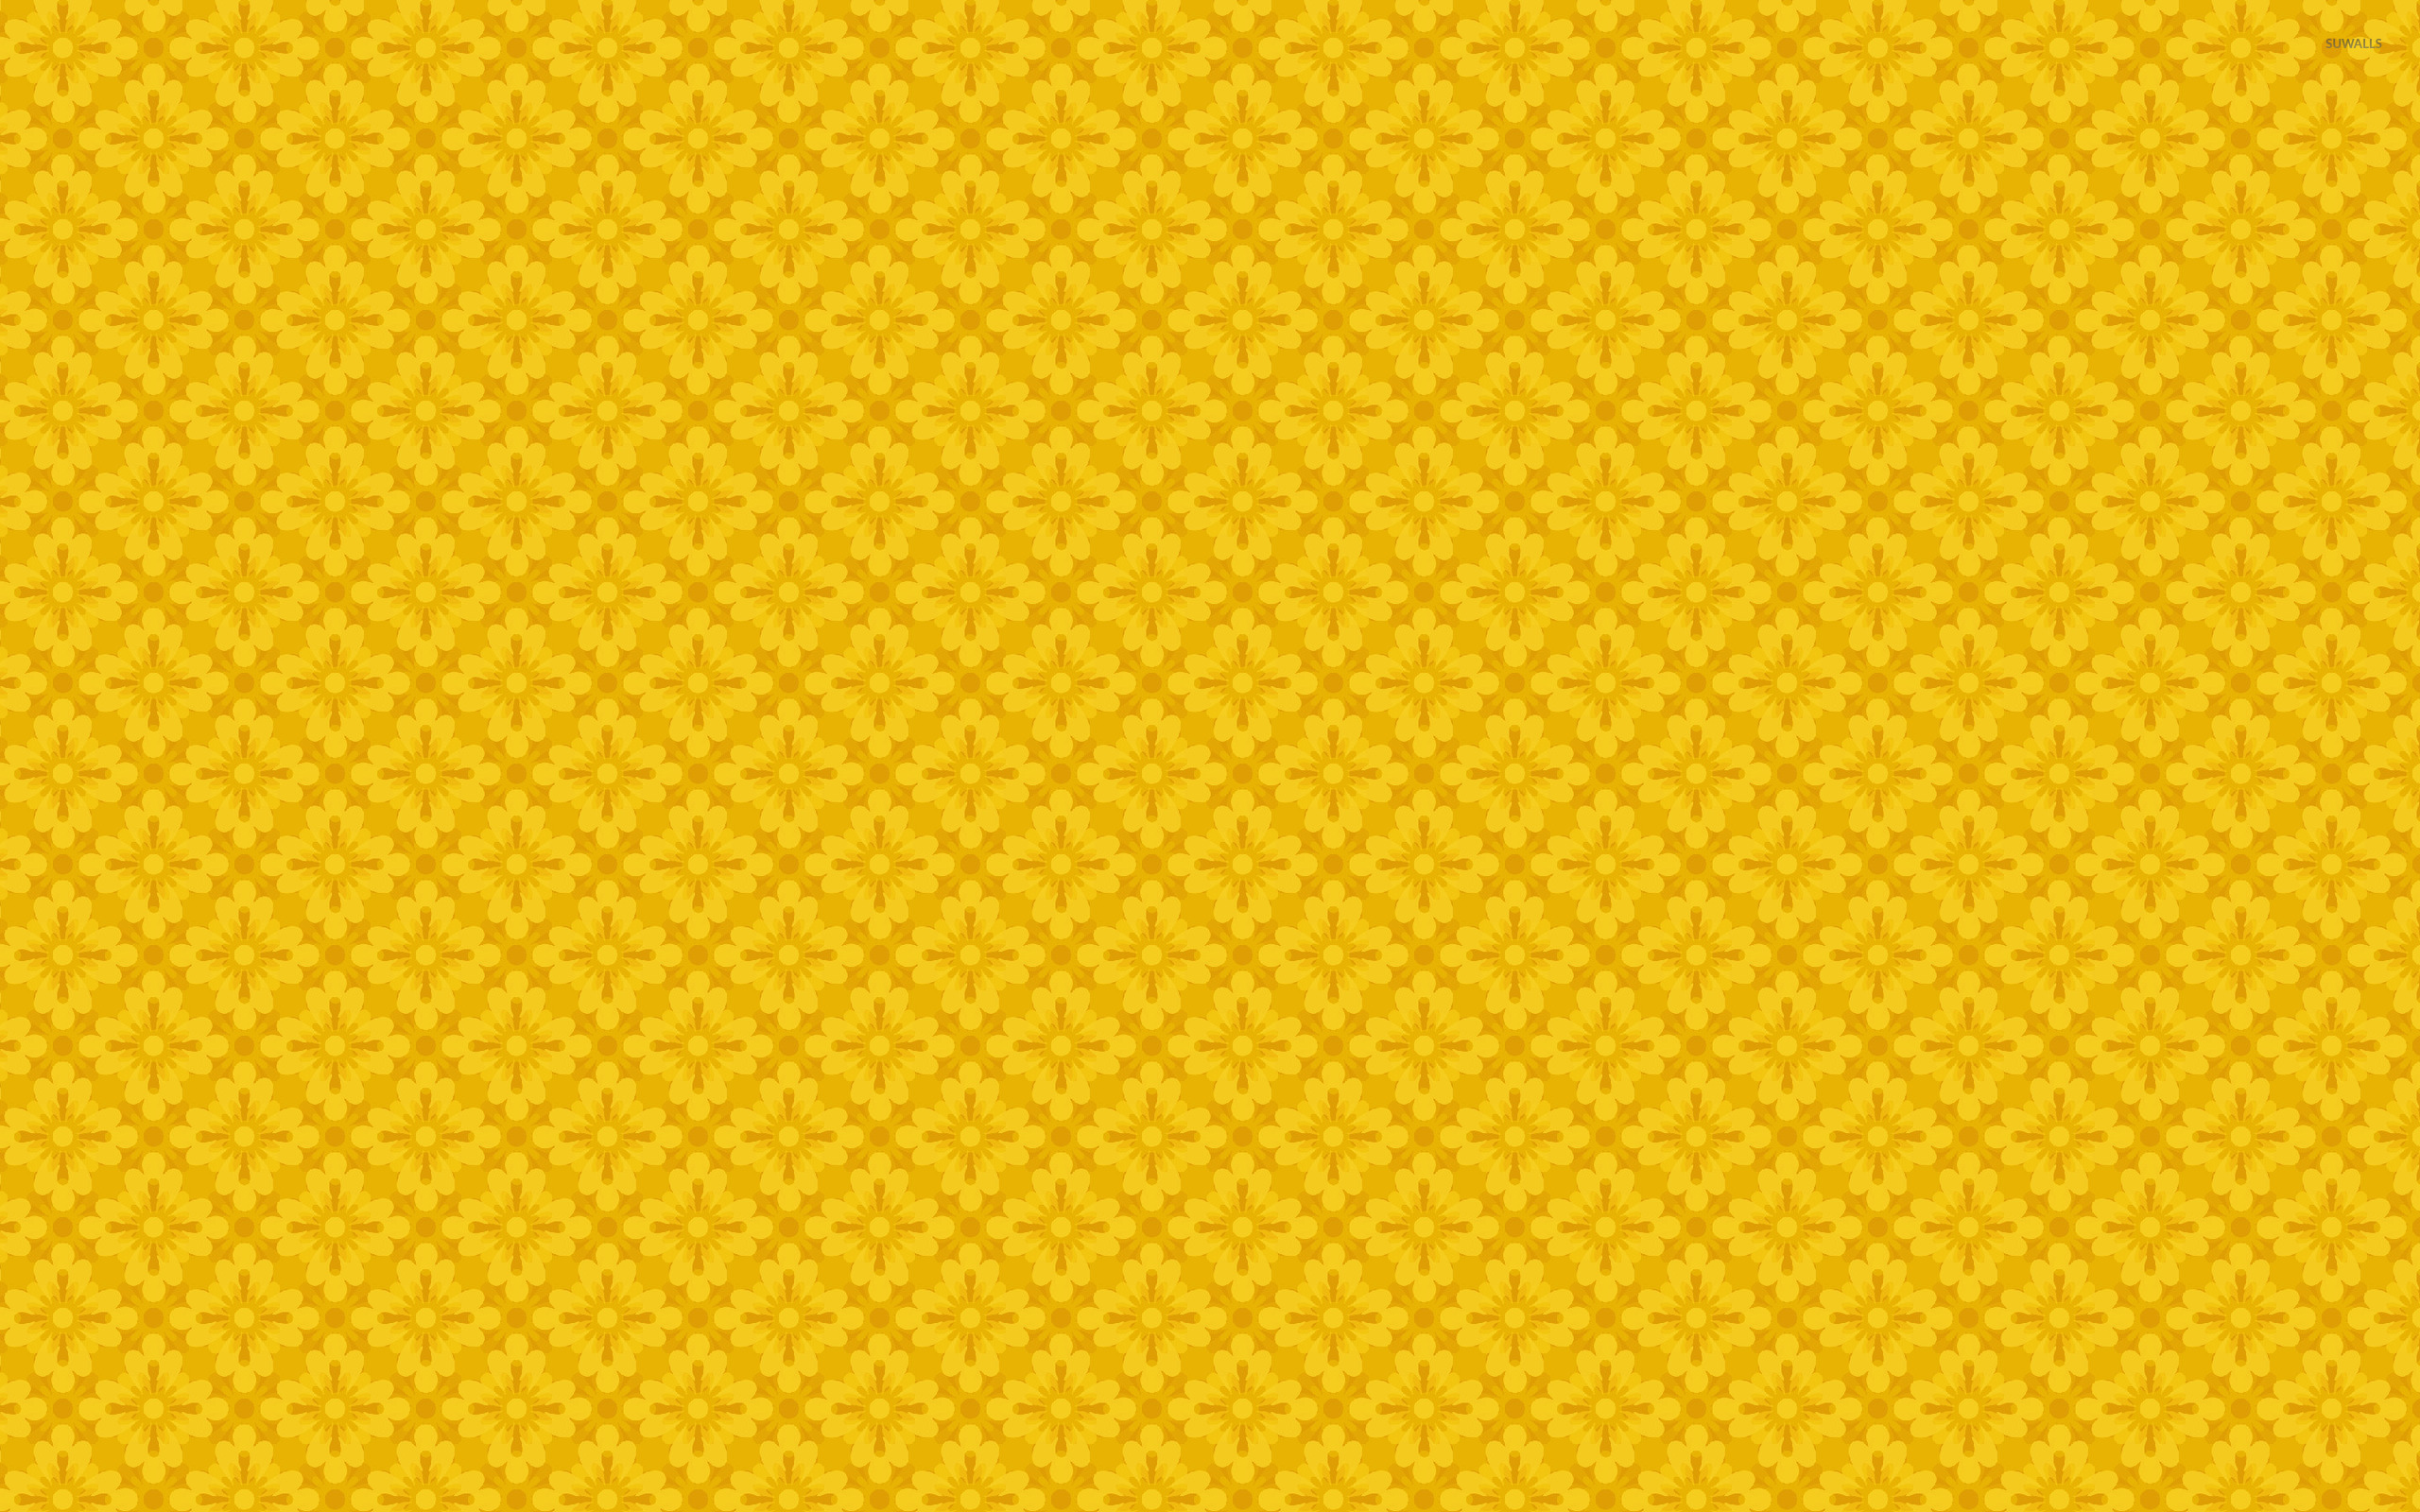 yellow floral pattern - photo #18